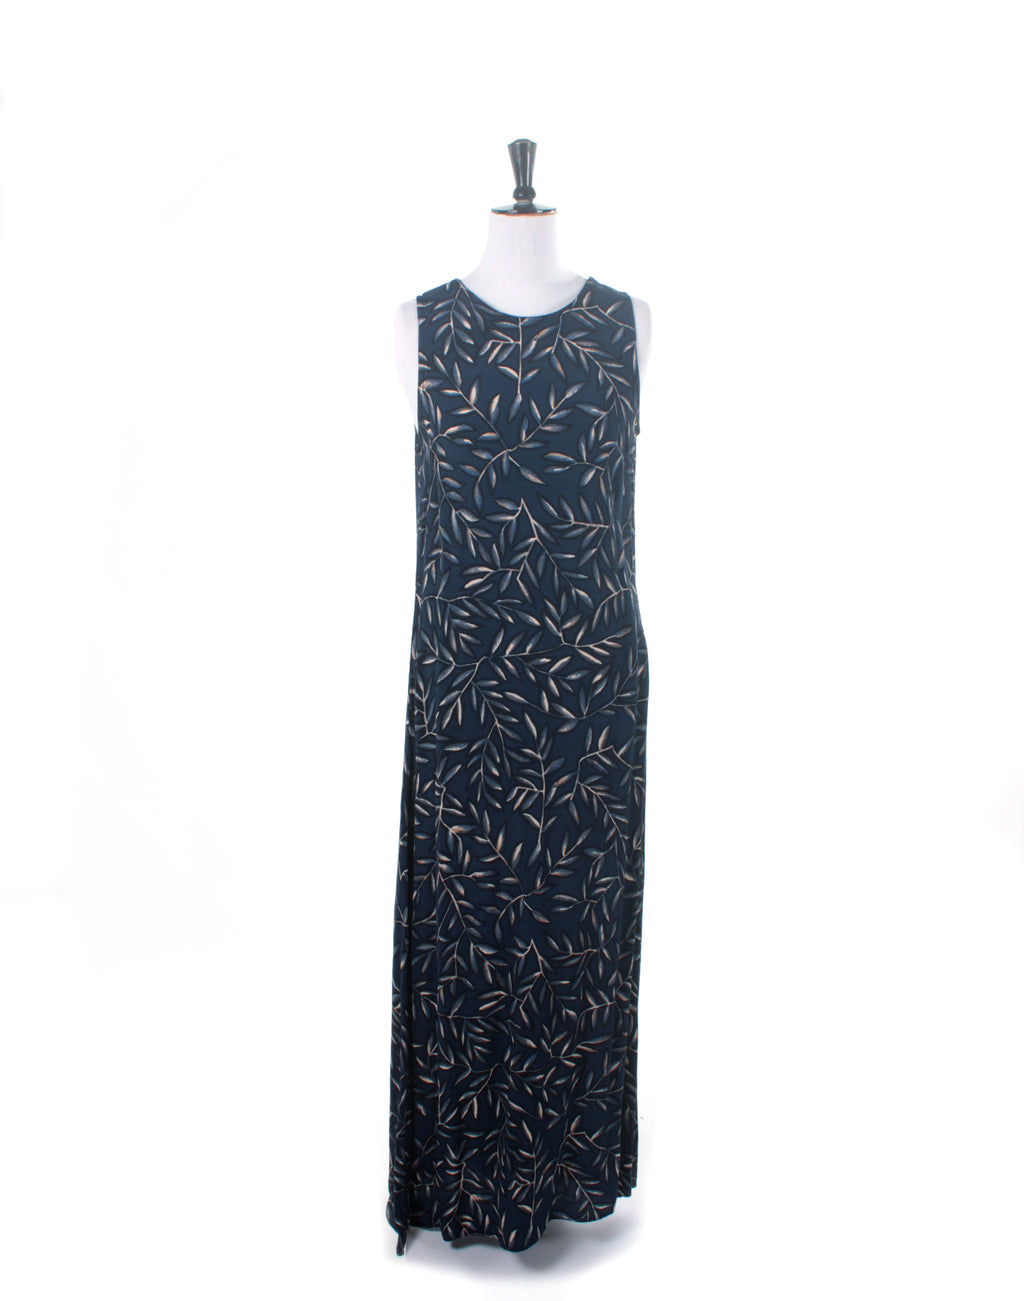 Vintage 90's Michael Renn Navy Leaf Maxi Dress